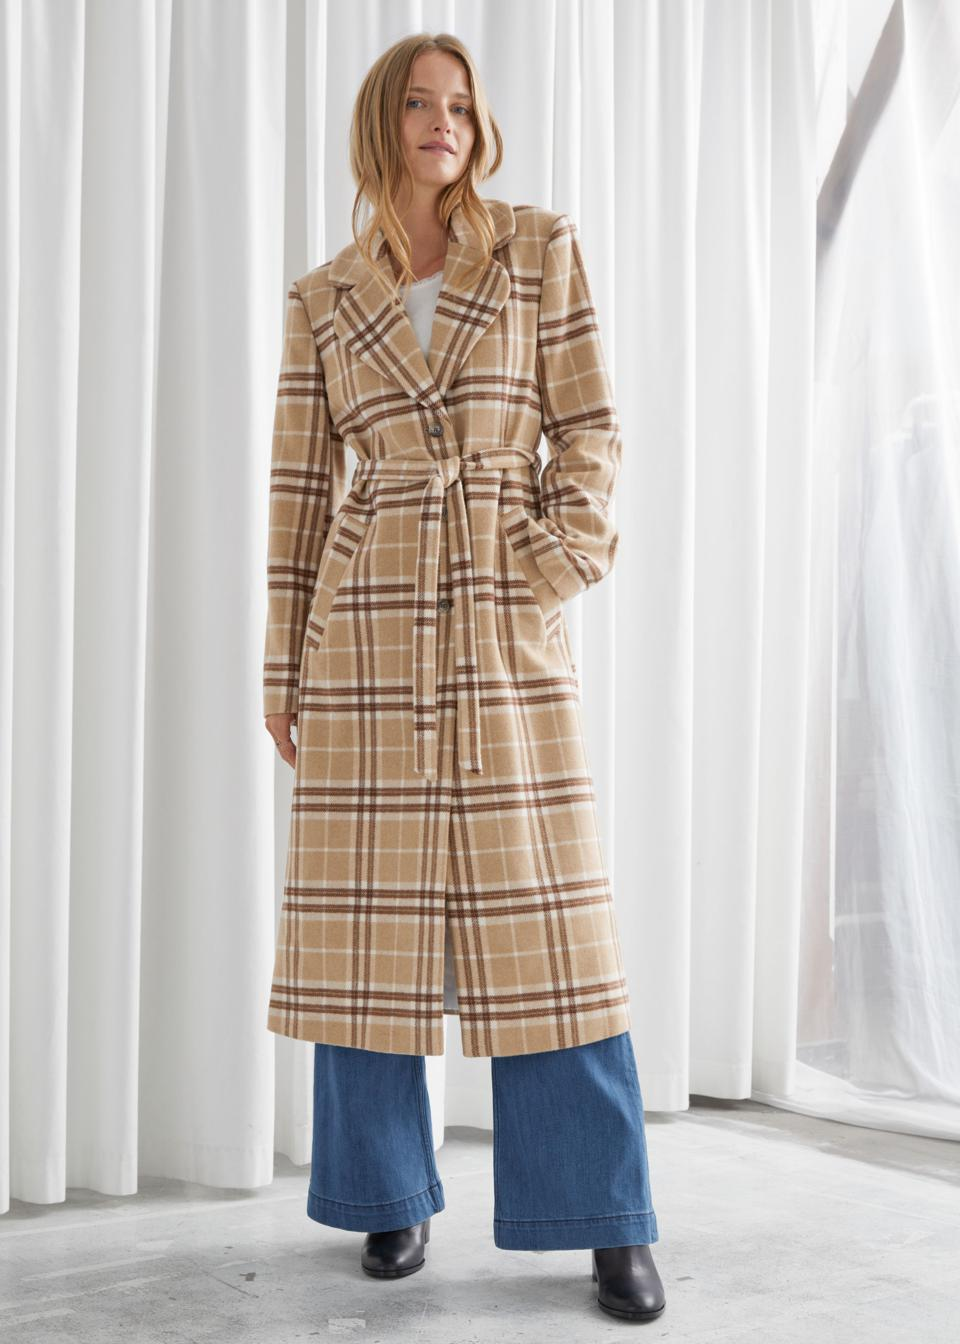 Woven plaid wool blend coat accentuated by a tonal self-tie belt